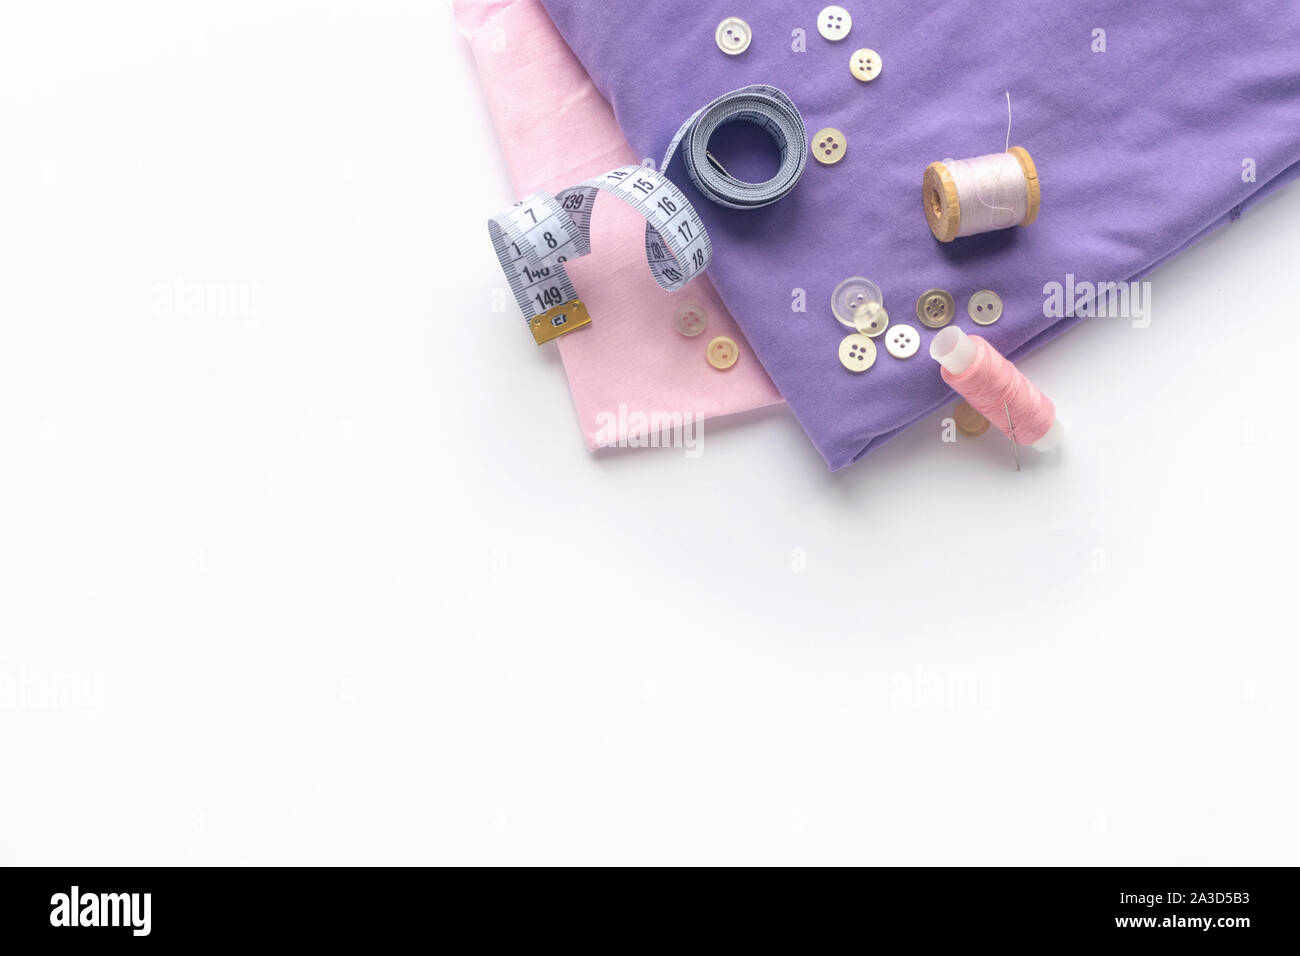 Sewing accessories and fabric on a white background. Fabric, sewing threads, needle, buttons and sewing centimeter. top view, flatlay Stock Photo